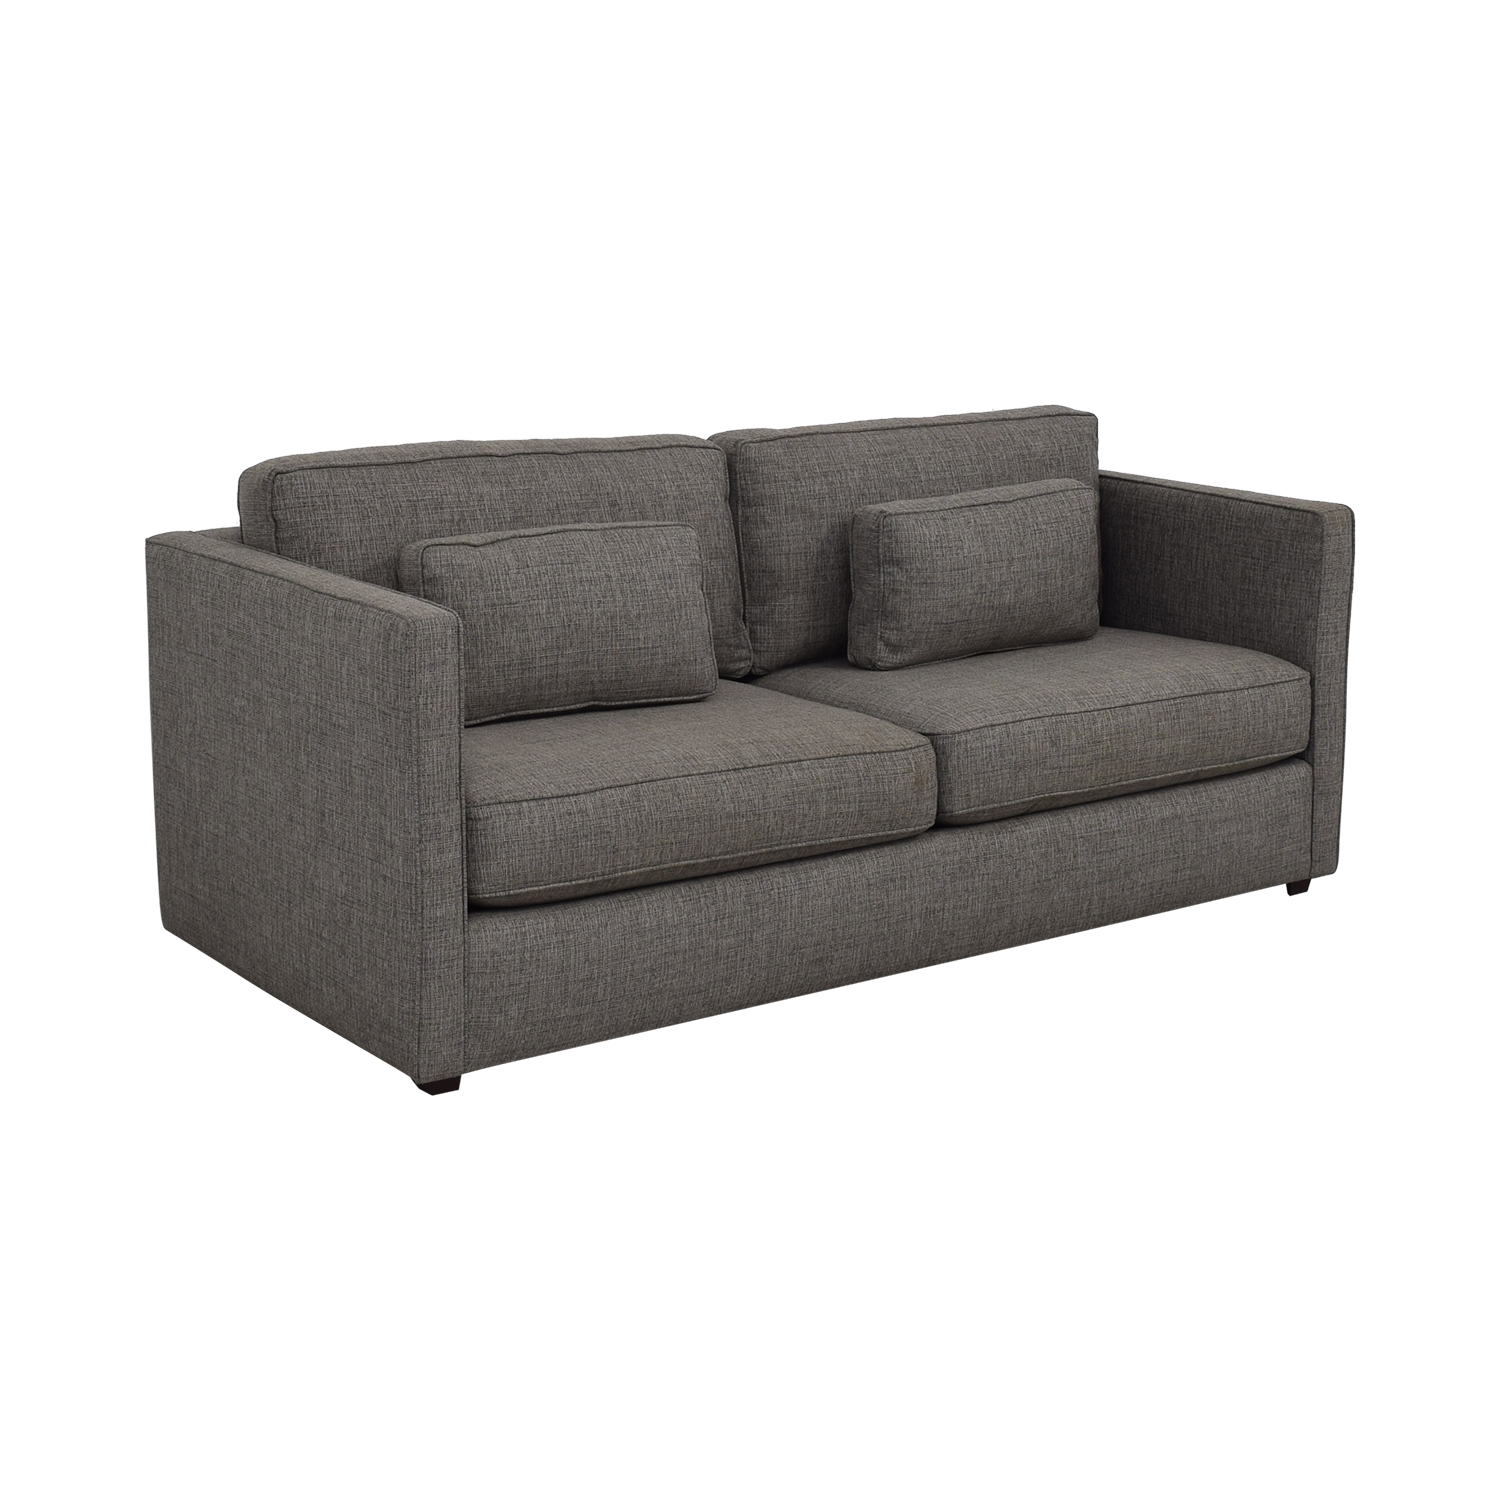 Room & Board Room & Board Watson Sofa for sale